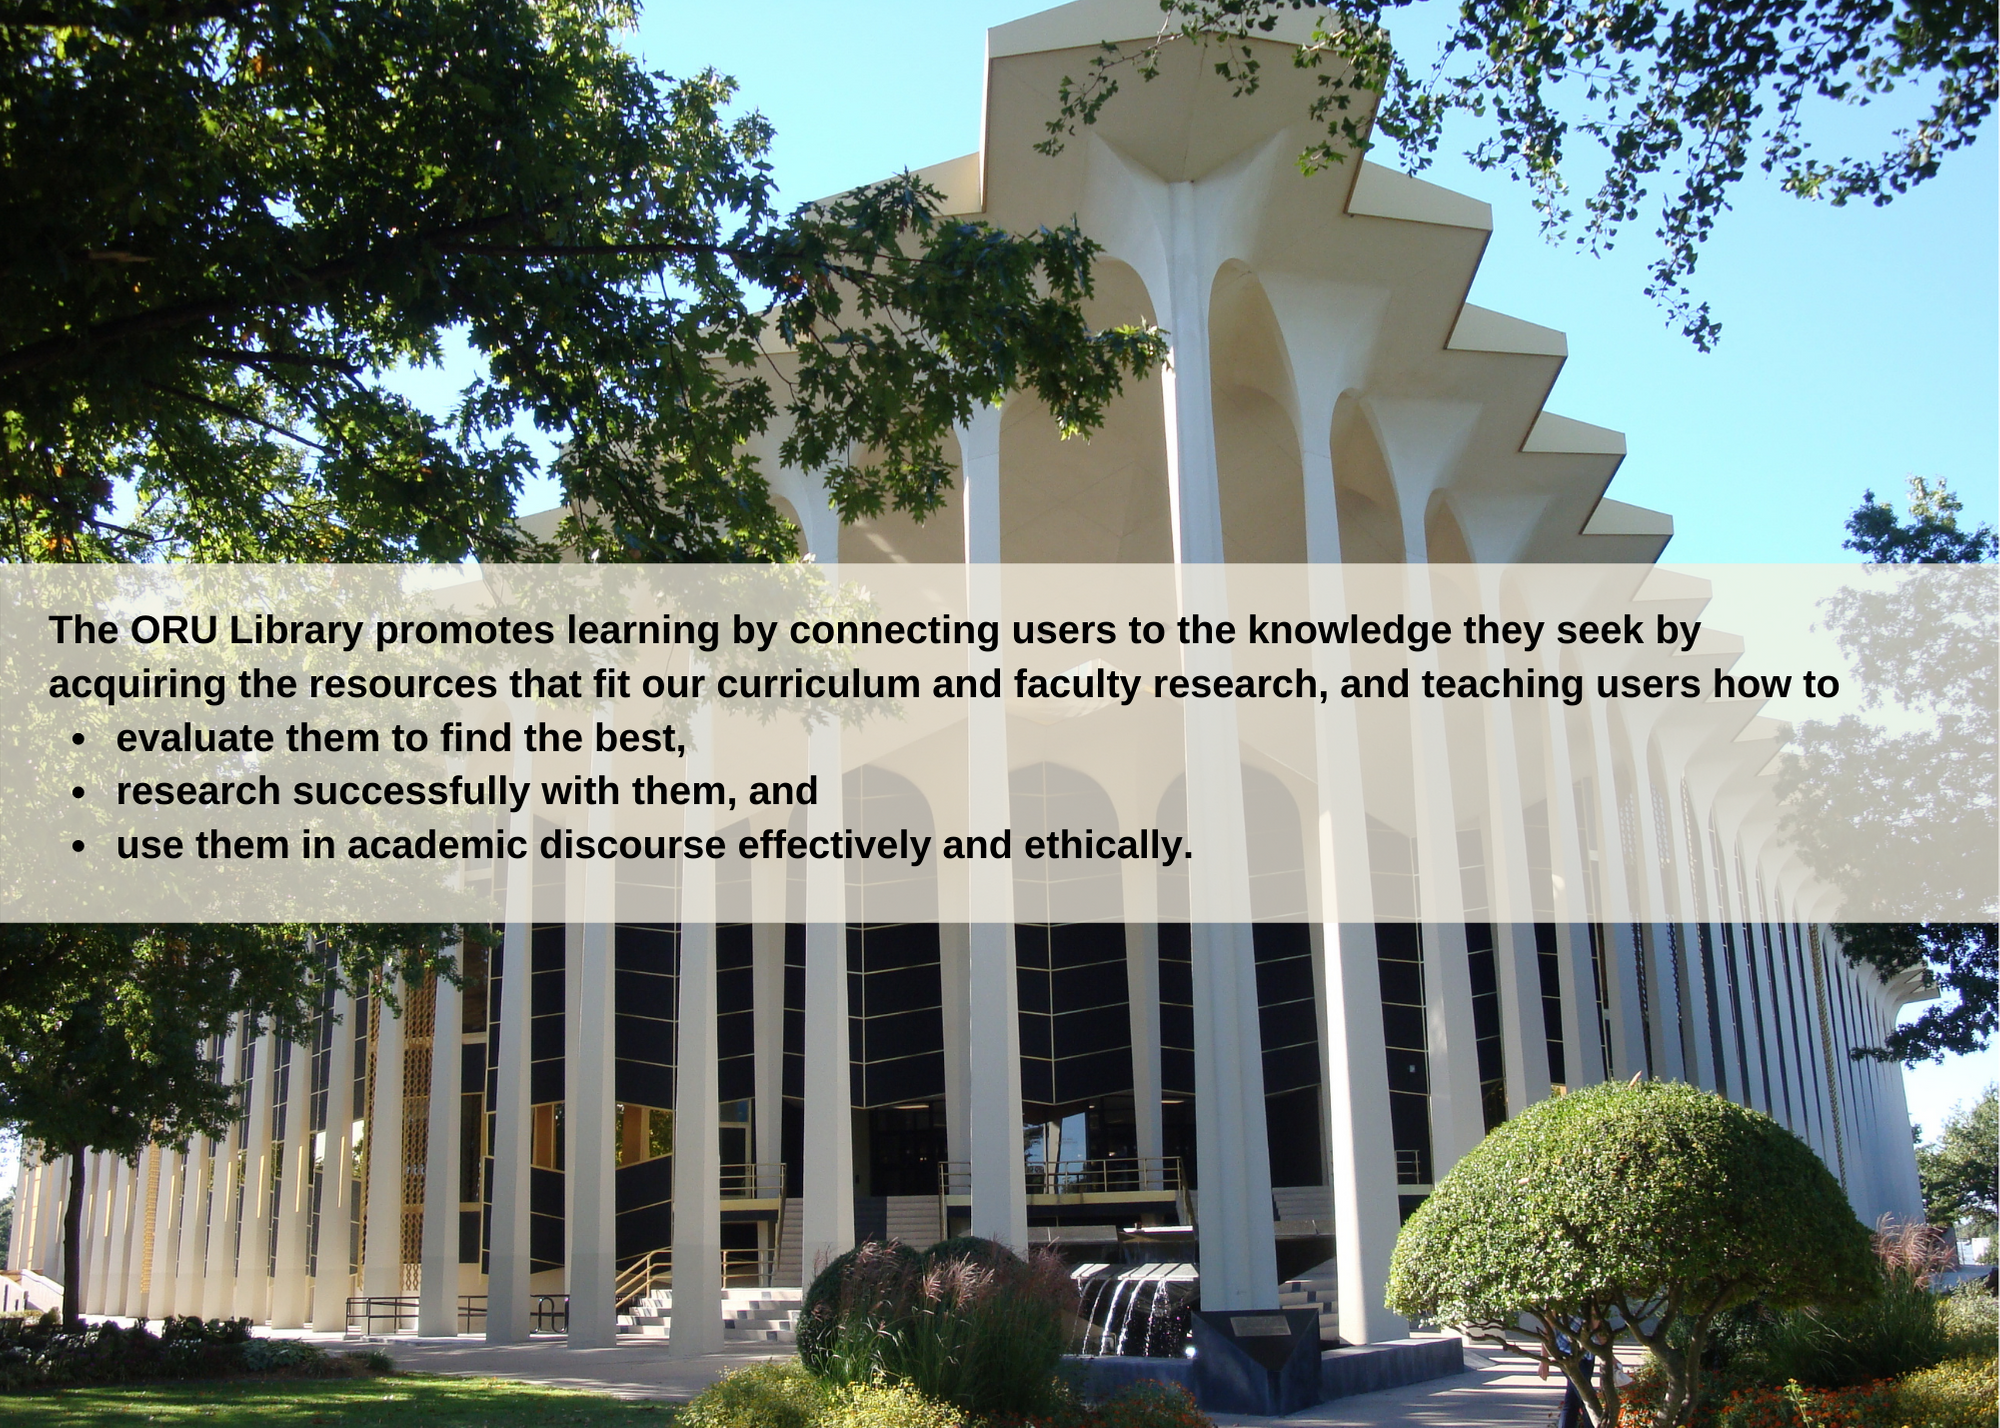 The ORU Library promotes learning by connecting users to the knowledge they seek by acquiring the resources that fit our curriculum and faculty research, and teaching users how to evaluate them to find the best, research successfully with them, and use them in academic discourse effectively and ethically.